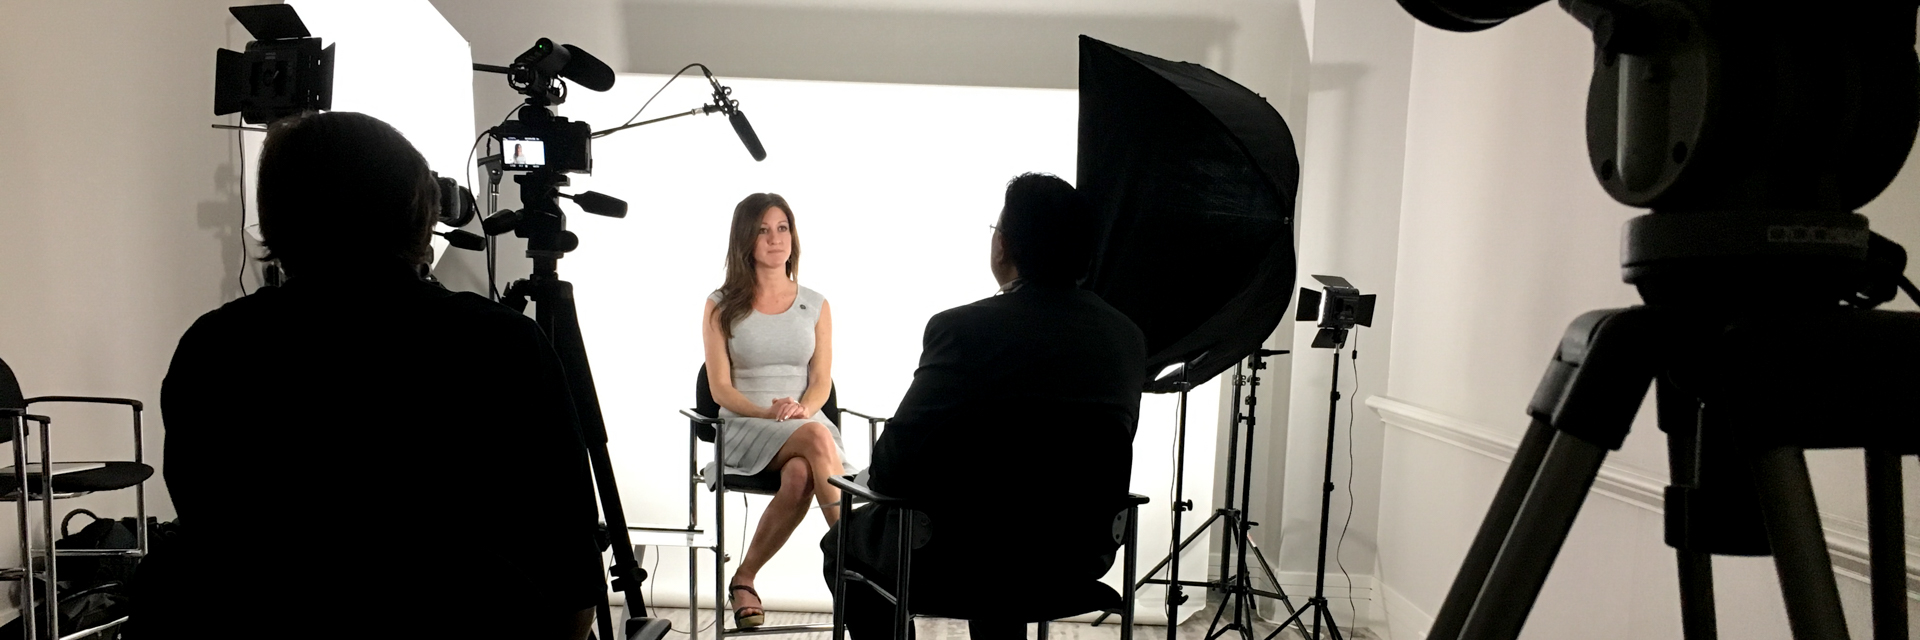 A beautiful woman sits for interviews in front of a pure white backdrop with lights, cameras, microphones and Dallas videographers surrounding her. This shows DTX Media's professional video production mobile studio set-up.